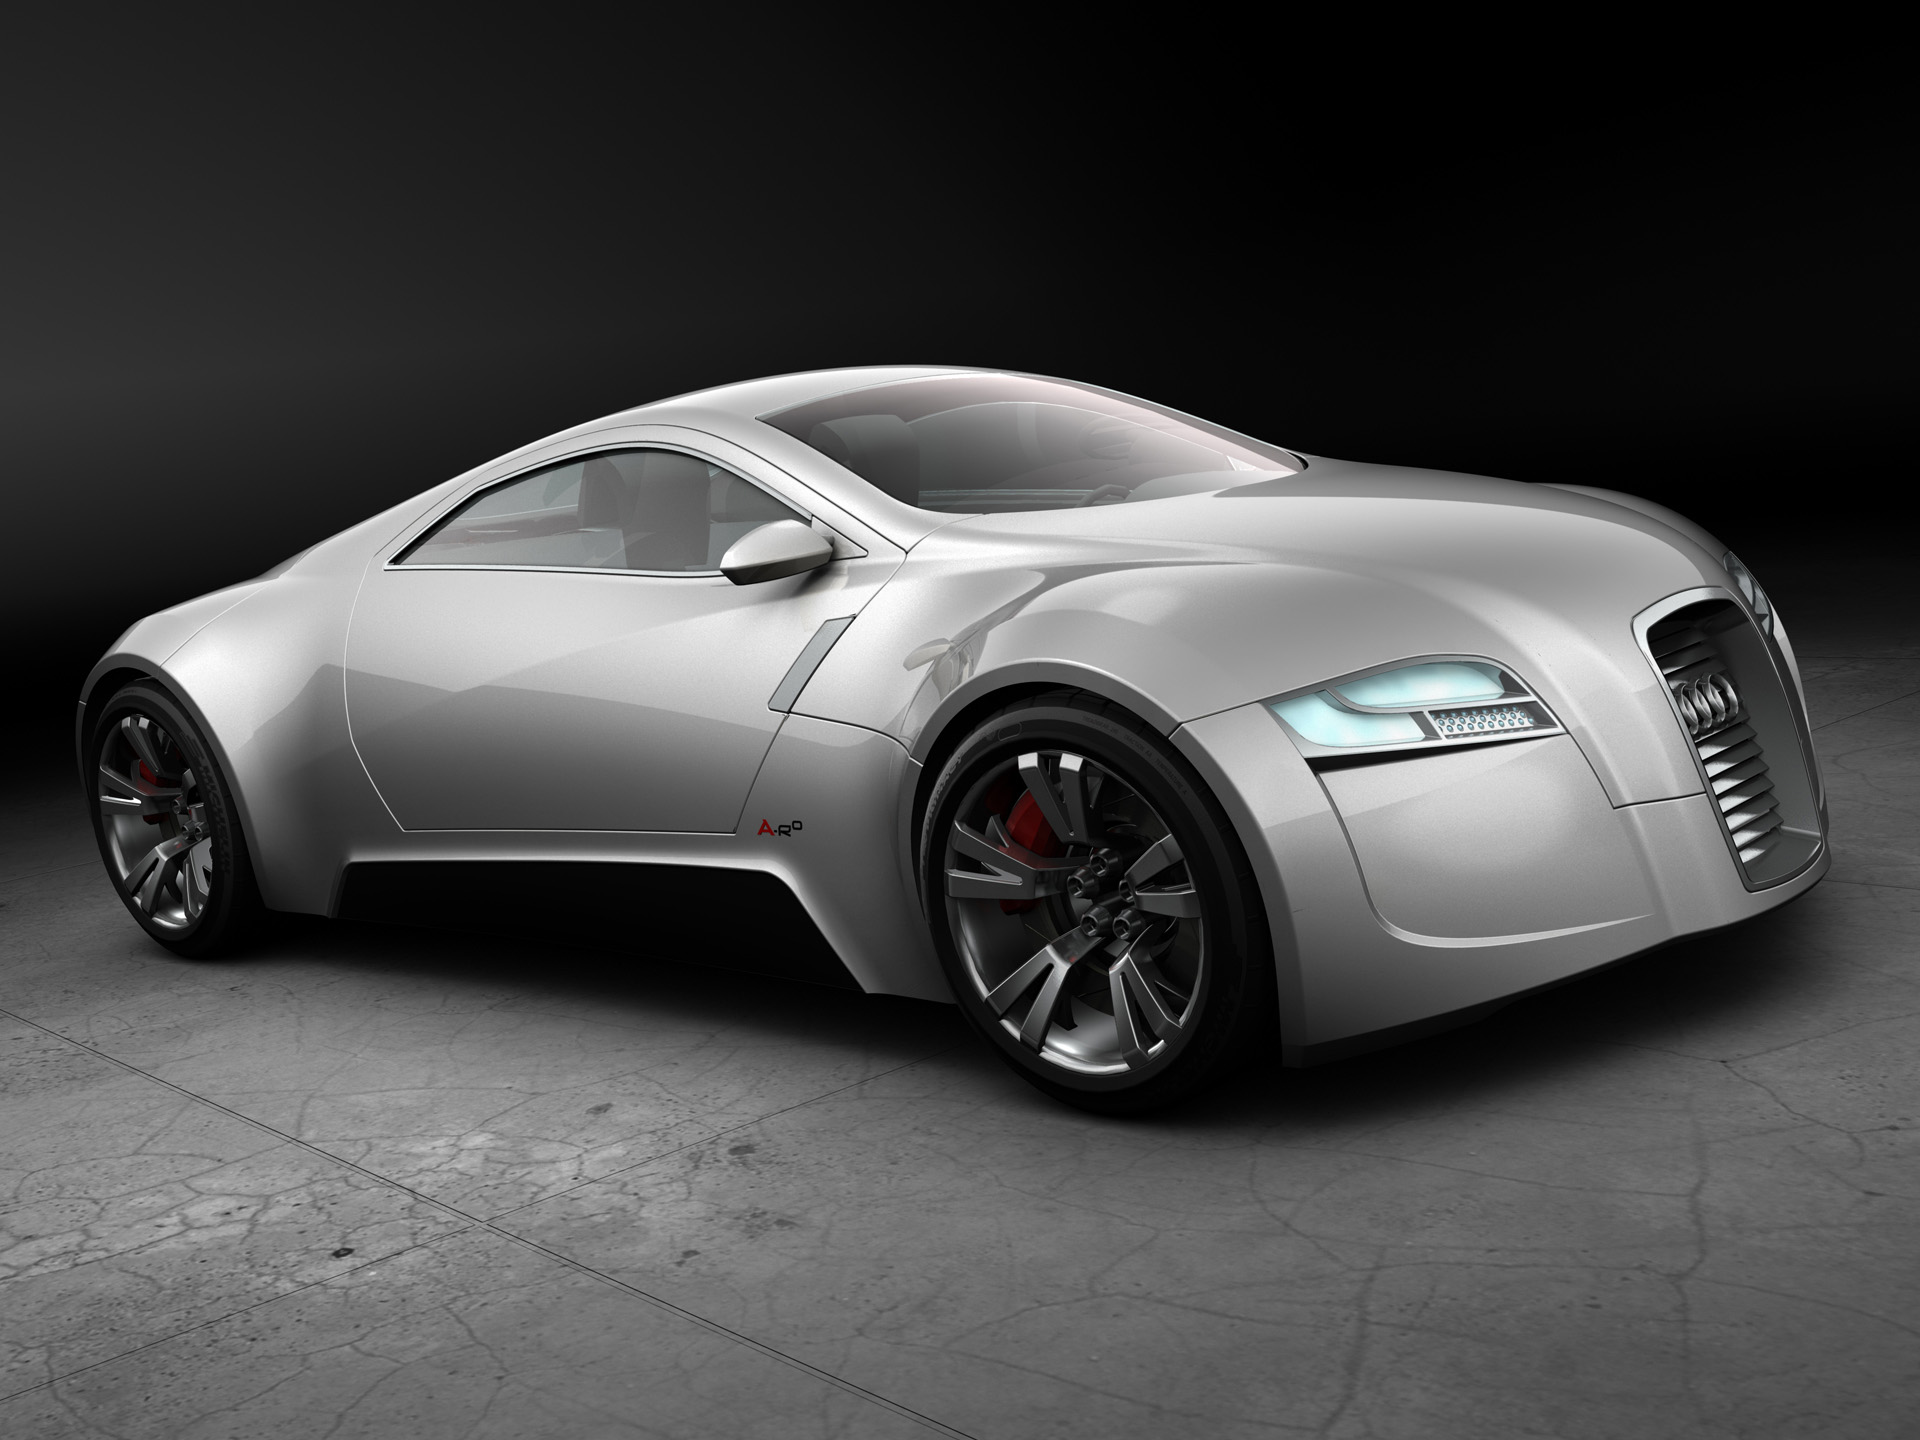 Audi Super Concept Car 640.14 Kb